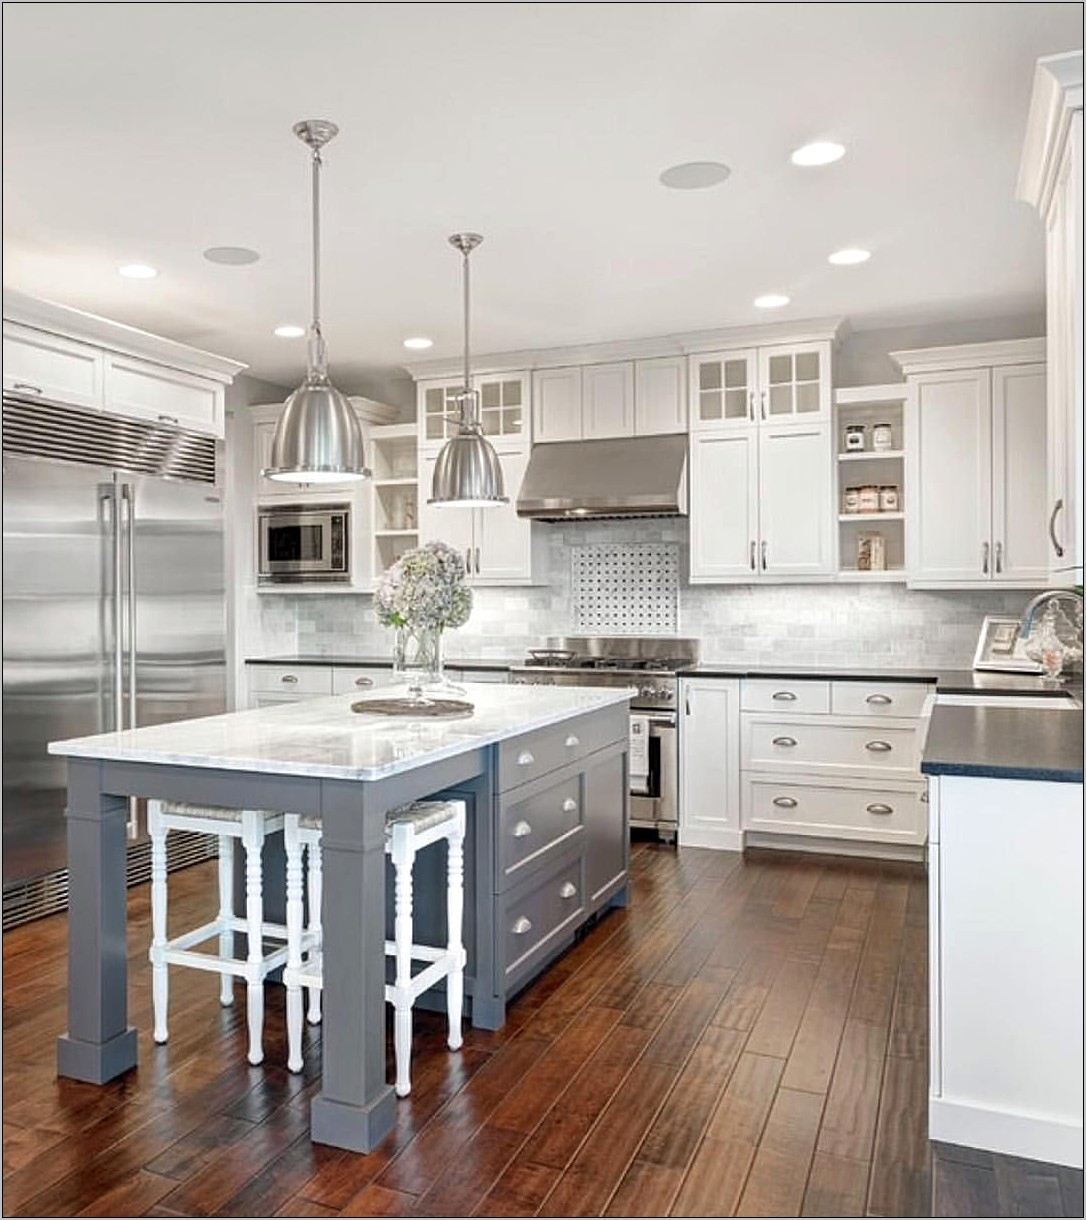 Decorative Kitchen Island Angled Corner Leg